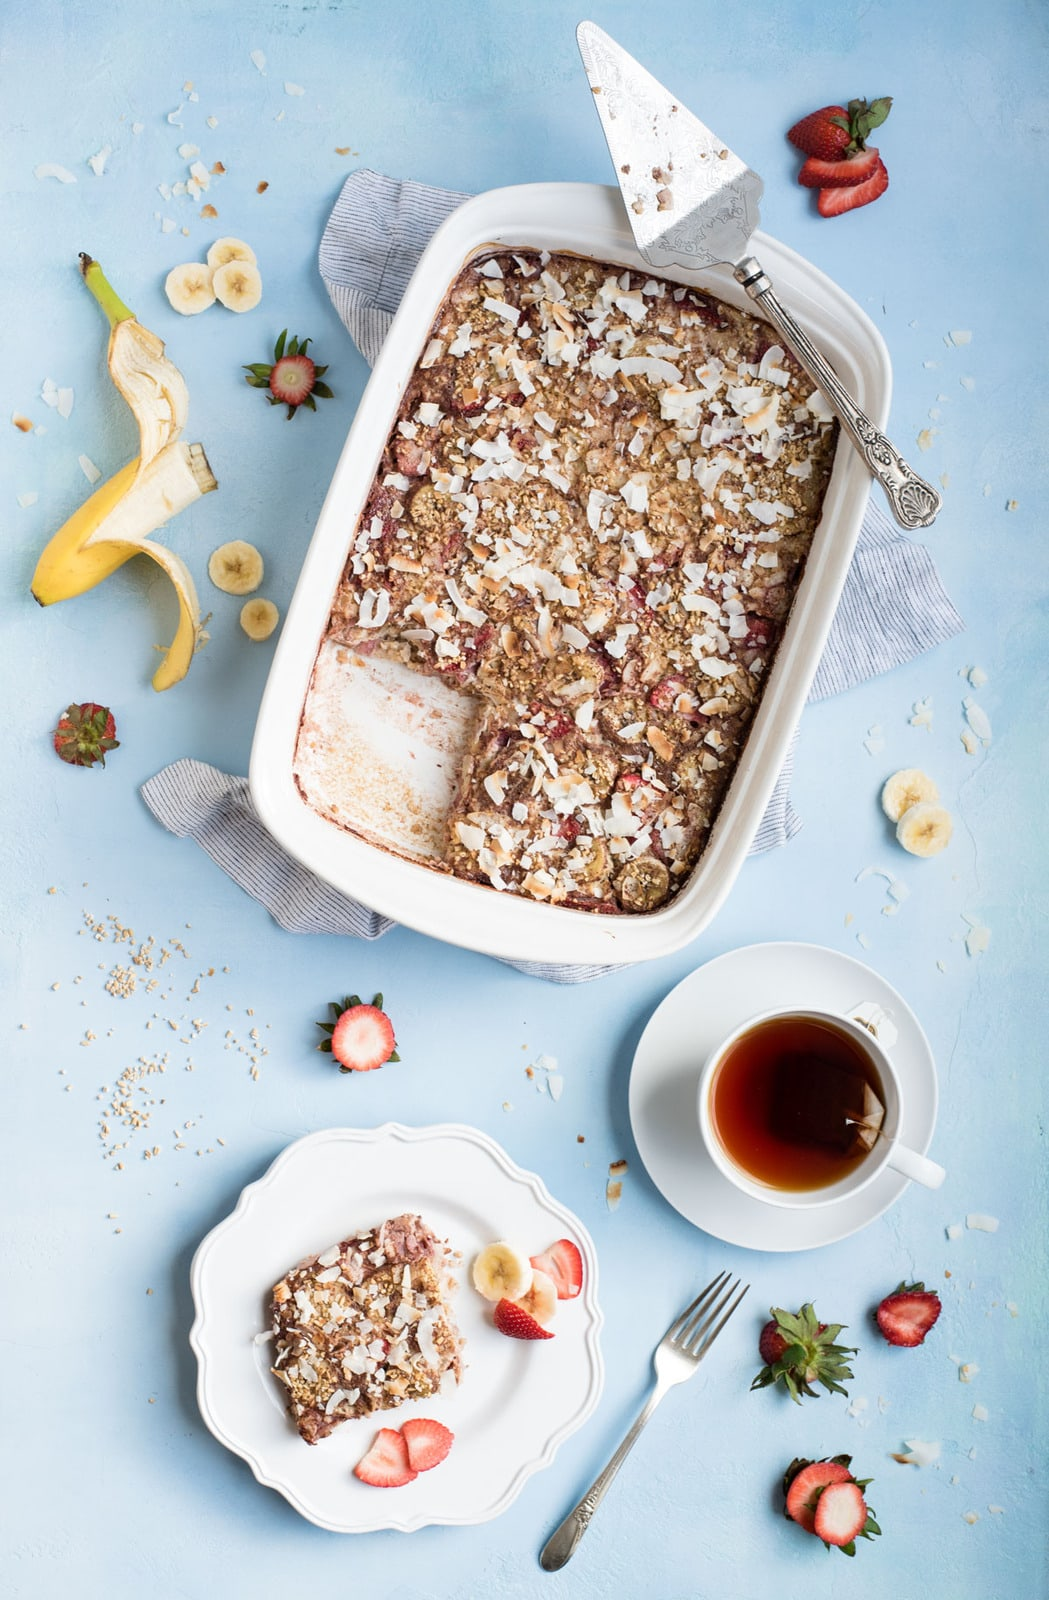 Strawberry Banana Steel Cut Oat Bake overhead picture of dish with one serving and cup of tea